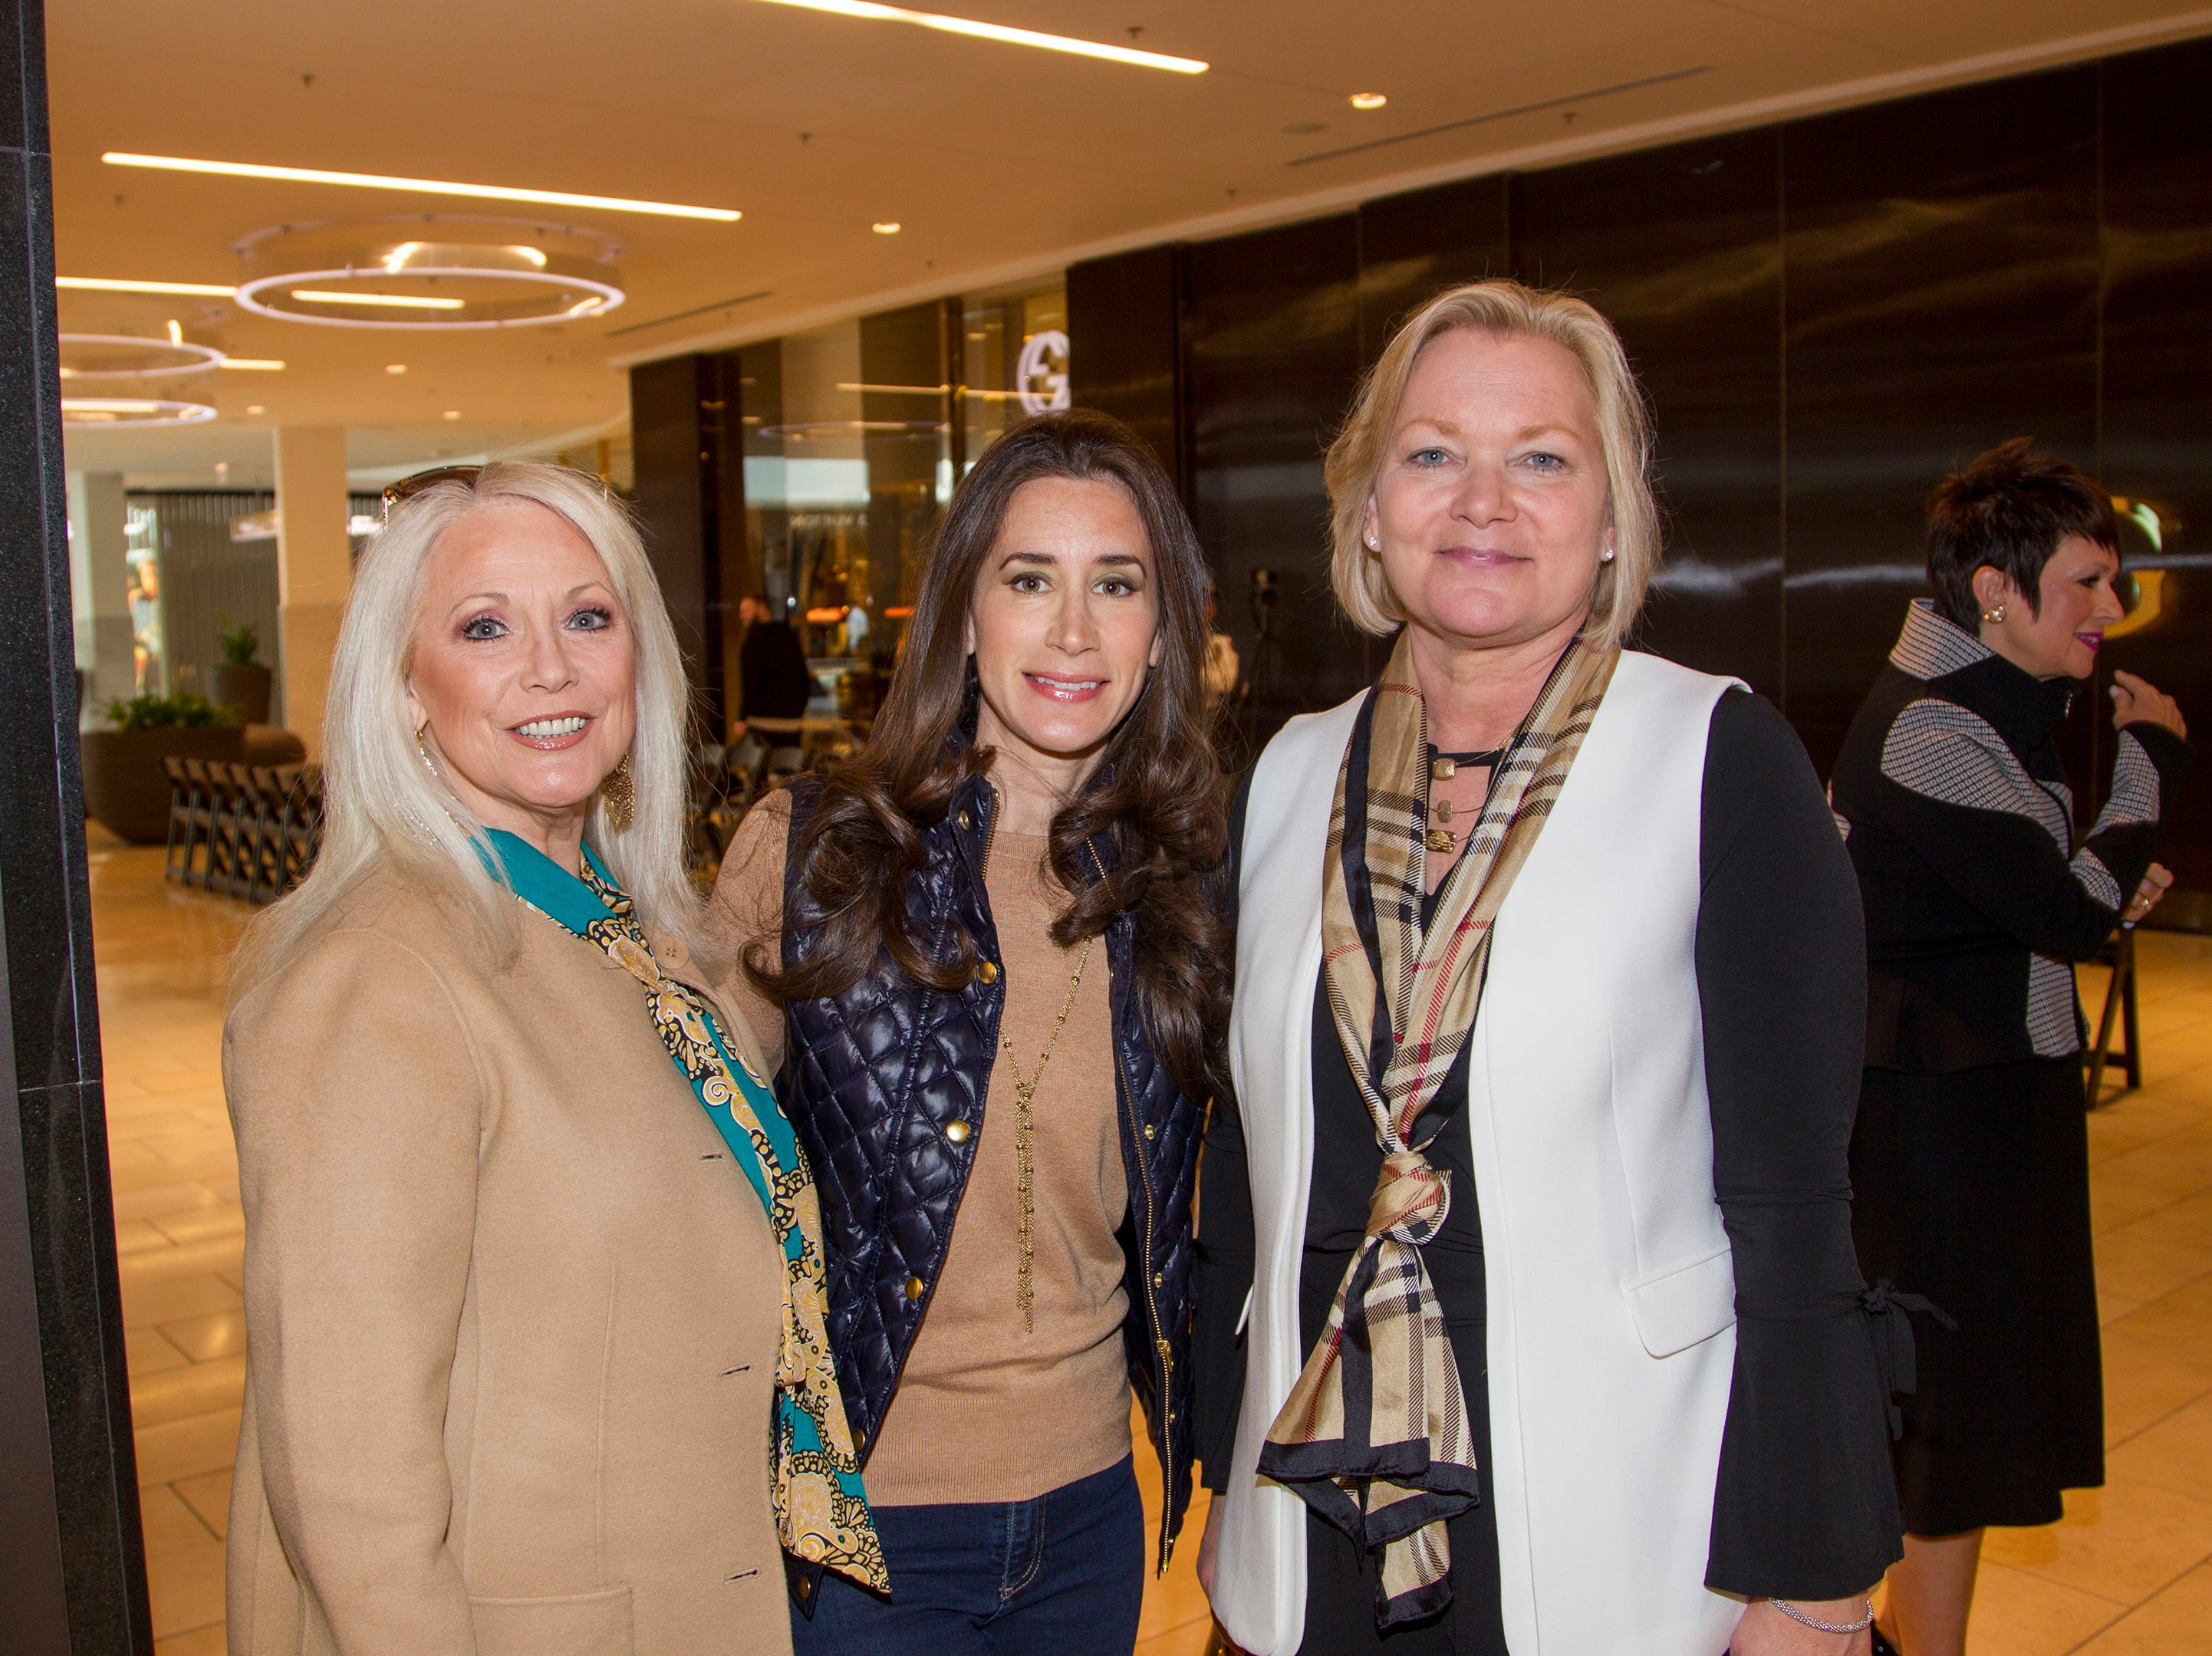 Cathy Tatel, Robyn Stevens, Bobbi Zientek. Westfield Garden State Plaza held its Meet the Artist & Trend Show benefitting The Valley Hospital Auxillary Saddle River Branch. 04/03/2019